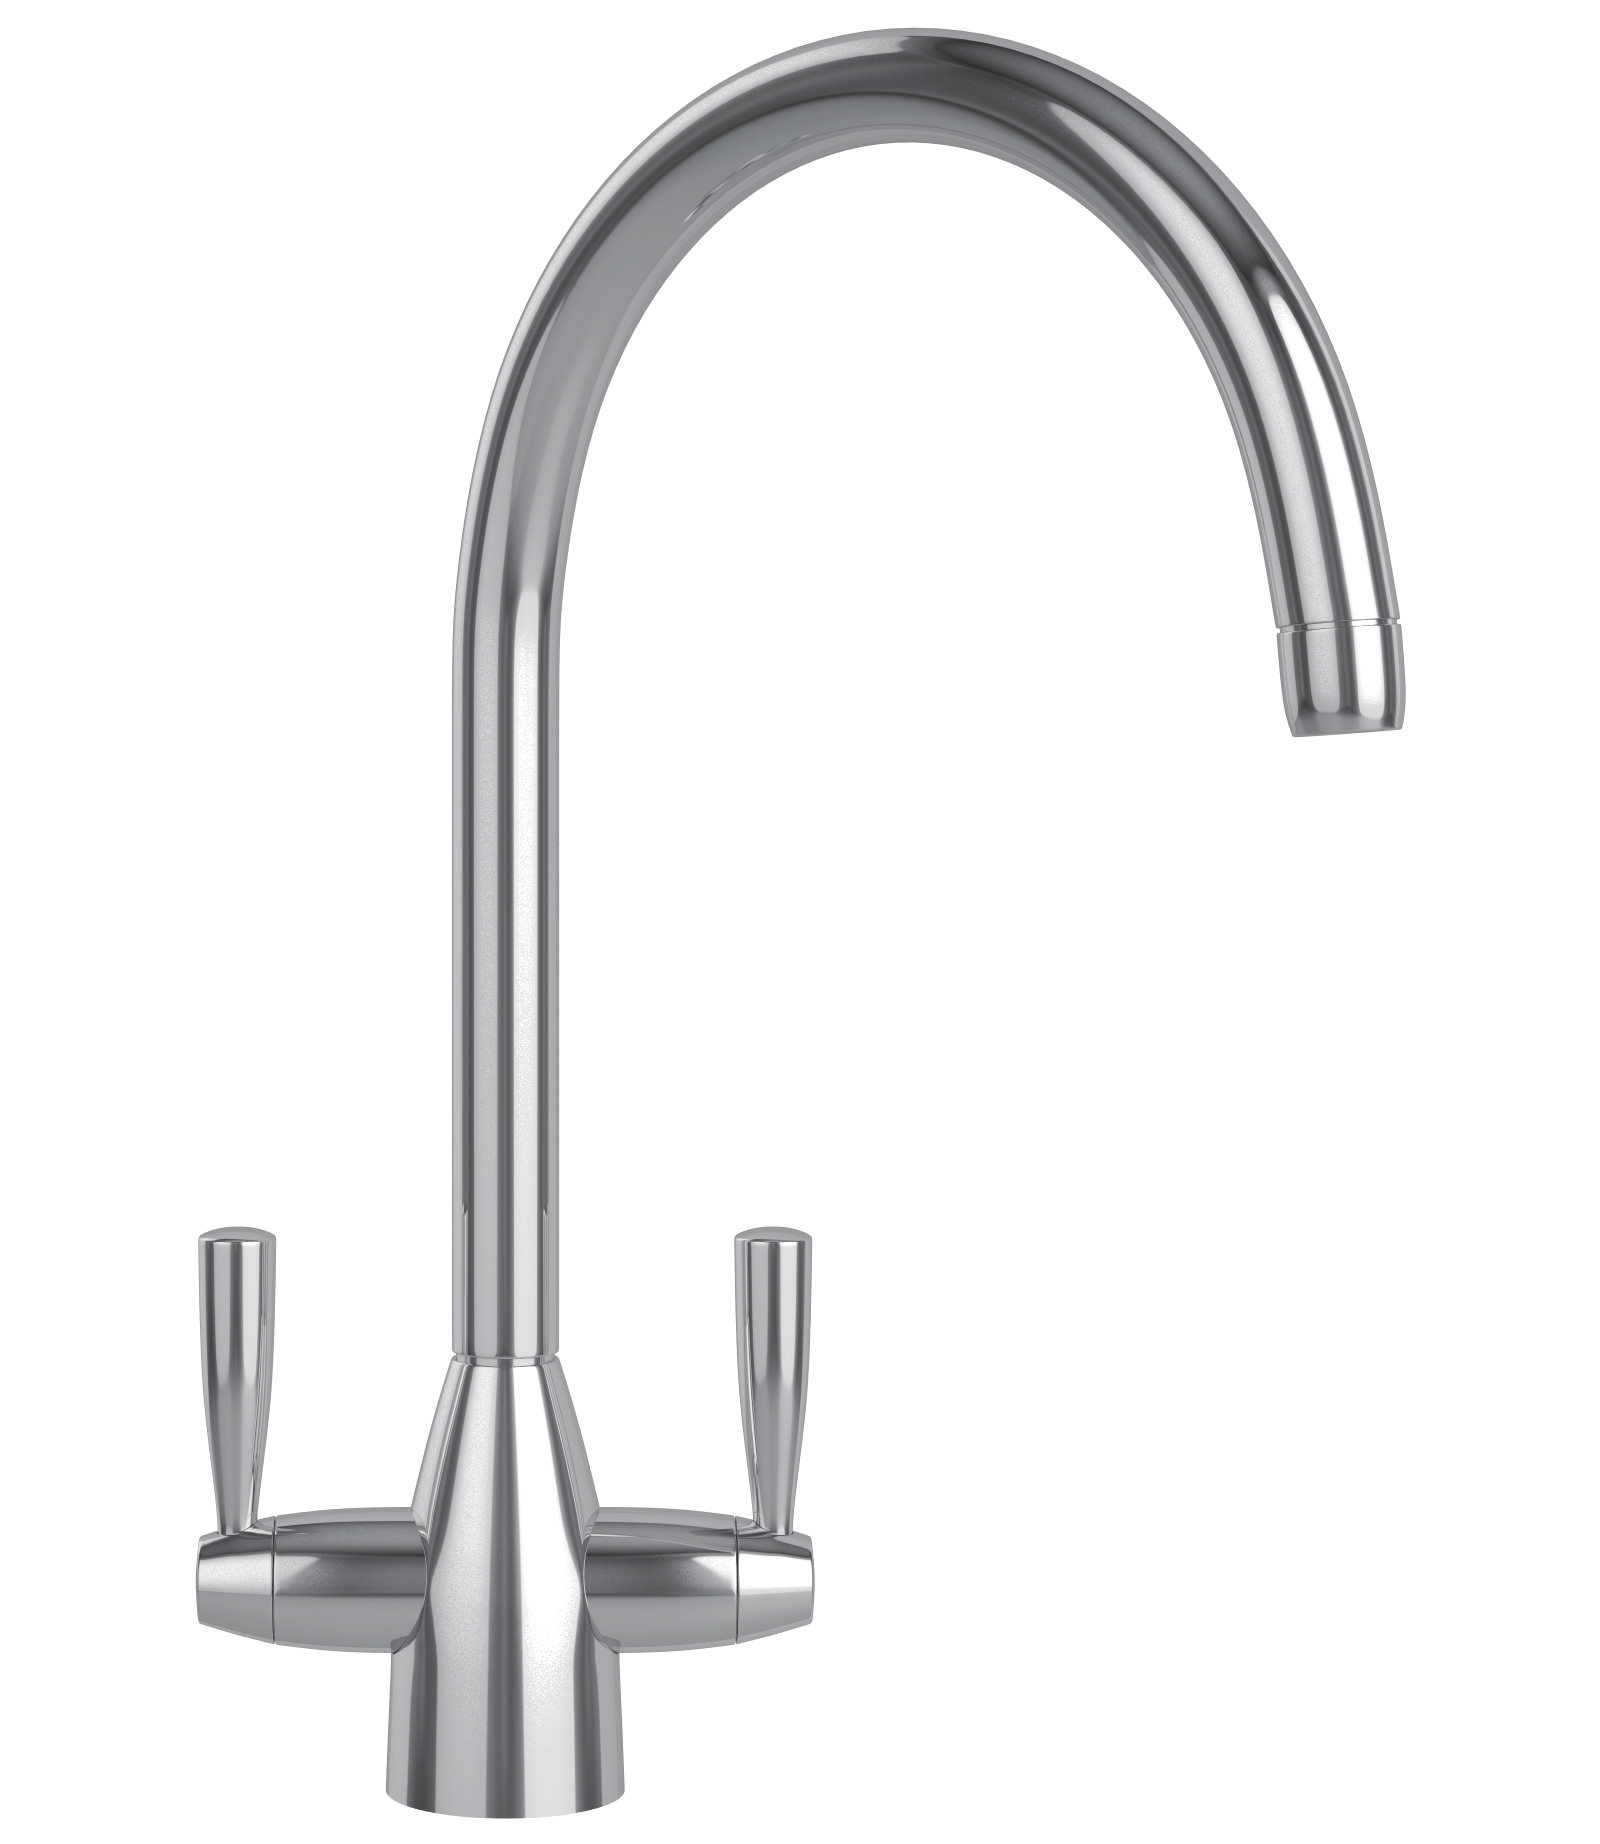 franke eiger kitchen sink mixer tap chrome - Kitchen Sink Mixer Taps